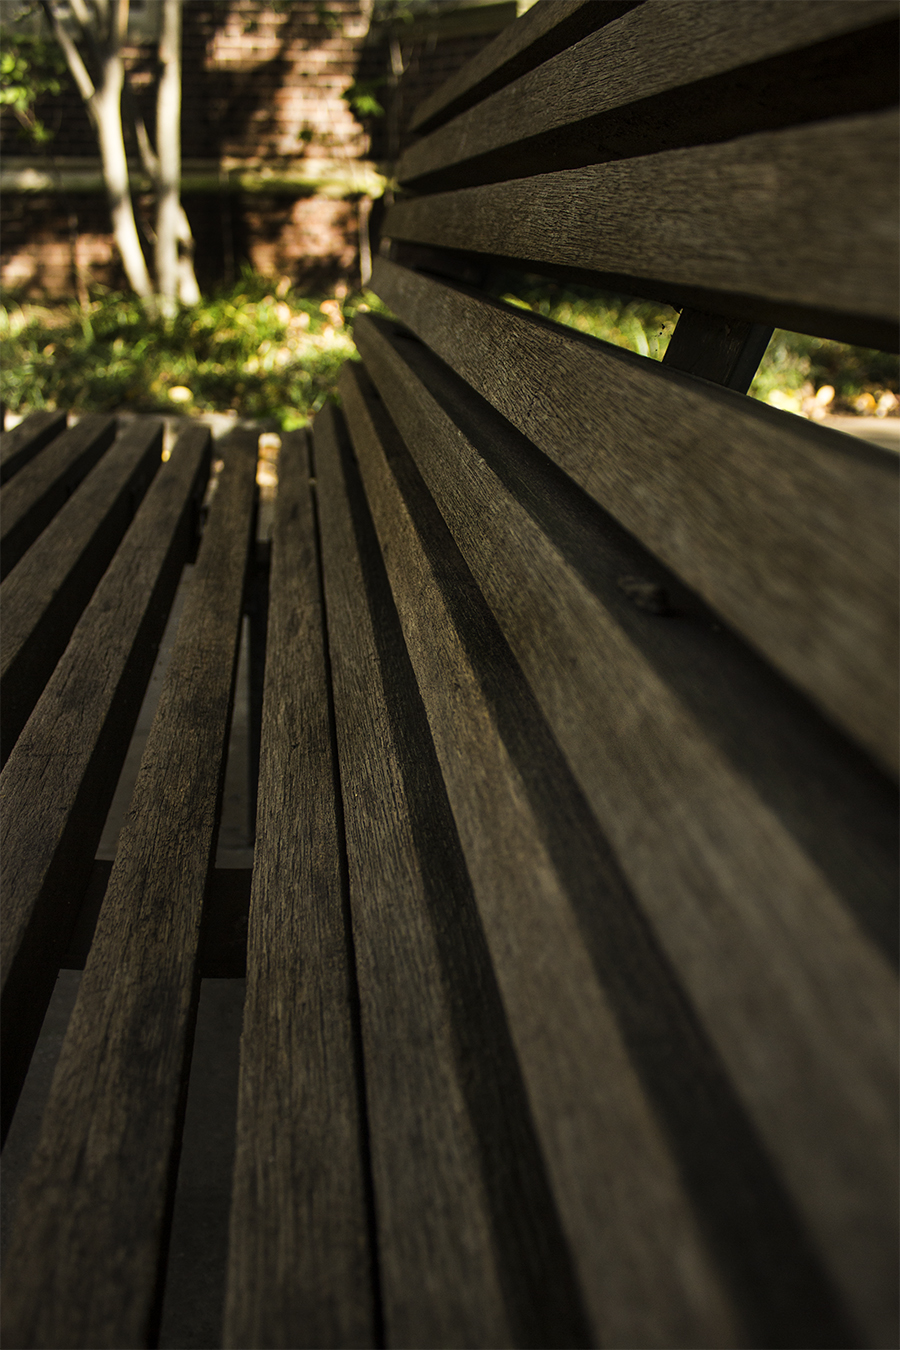 Yash Killa_StillLife_Philadelphia_Pattern_Repetition_Bench_Brown_Lines